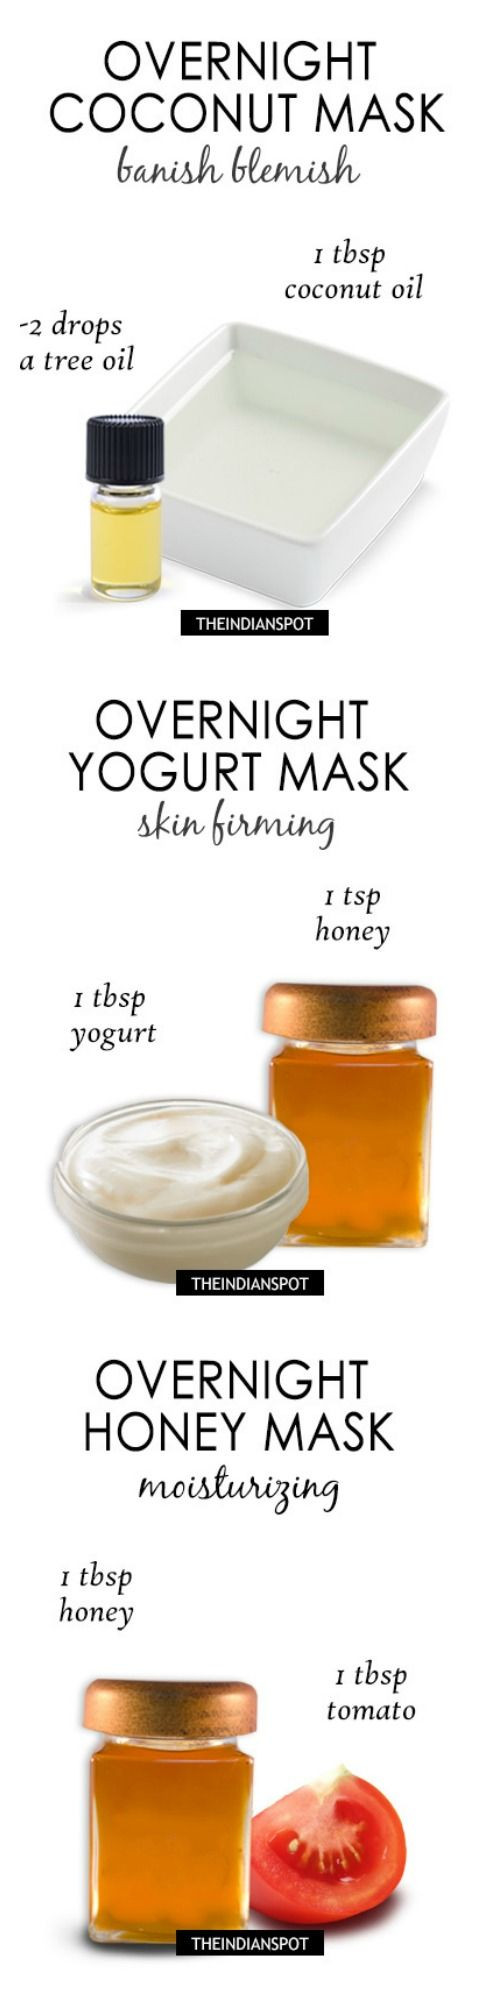 Best ideas about DIY Overnight Face Mask . Save or Pin Overnight diy face mask Now.